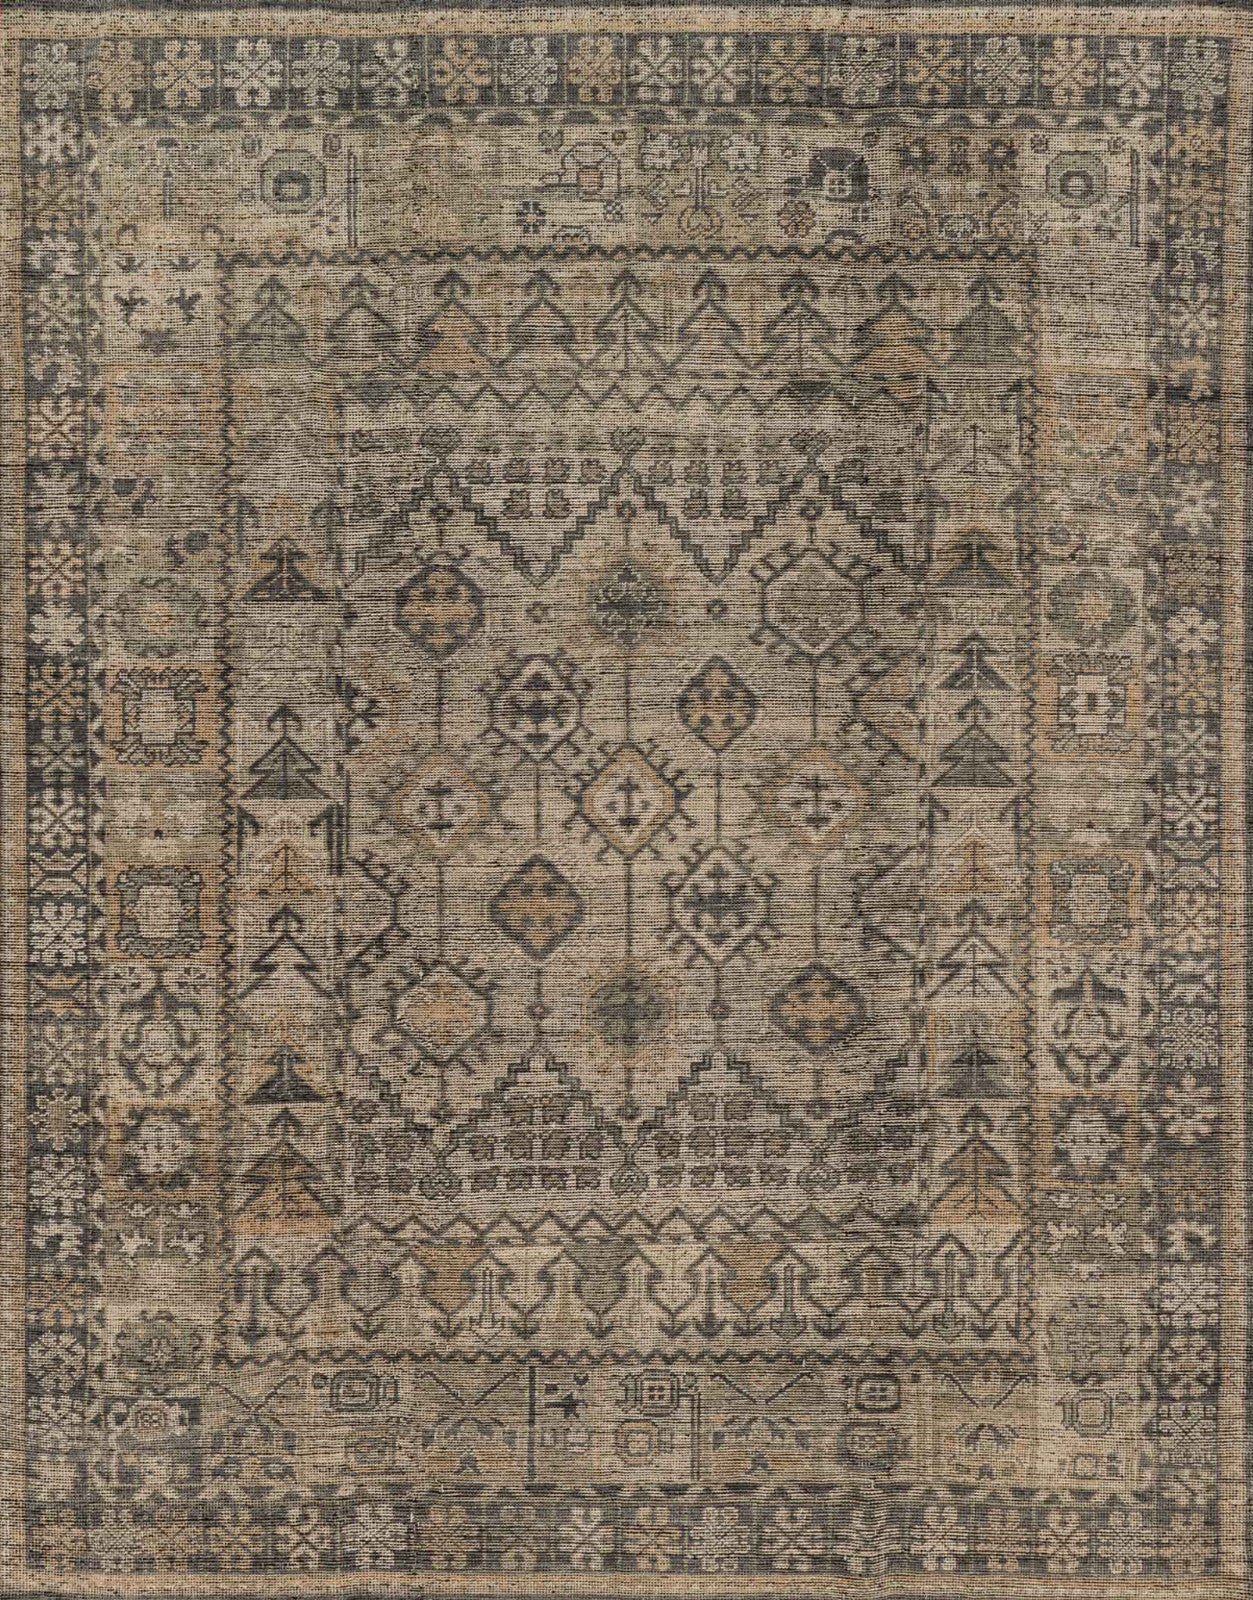 Loloi Heirloom HQ 06 Bone/Charcoal Area Rug. Click Image To Zoom